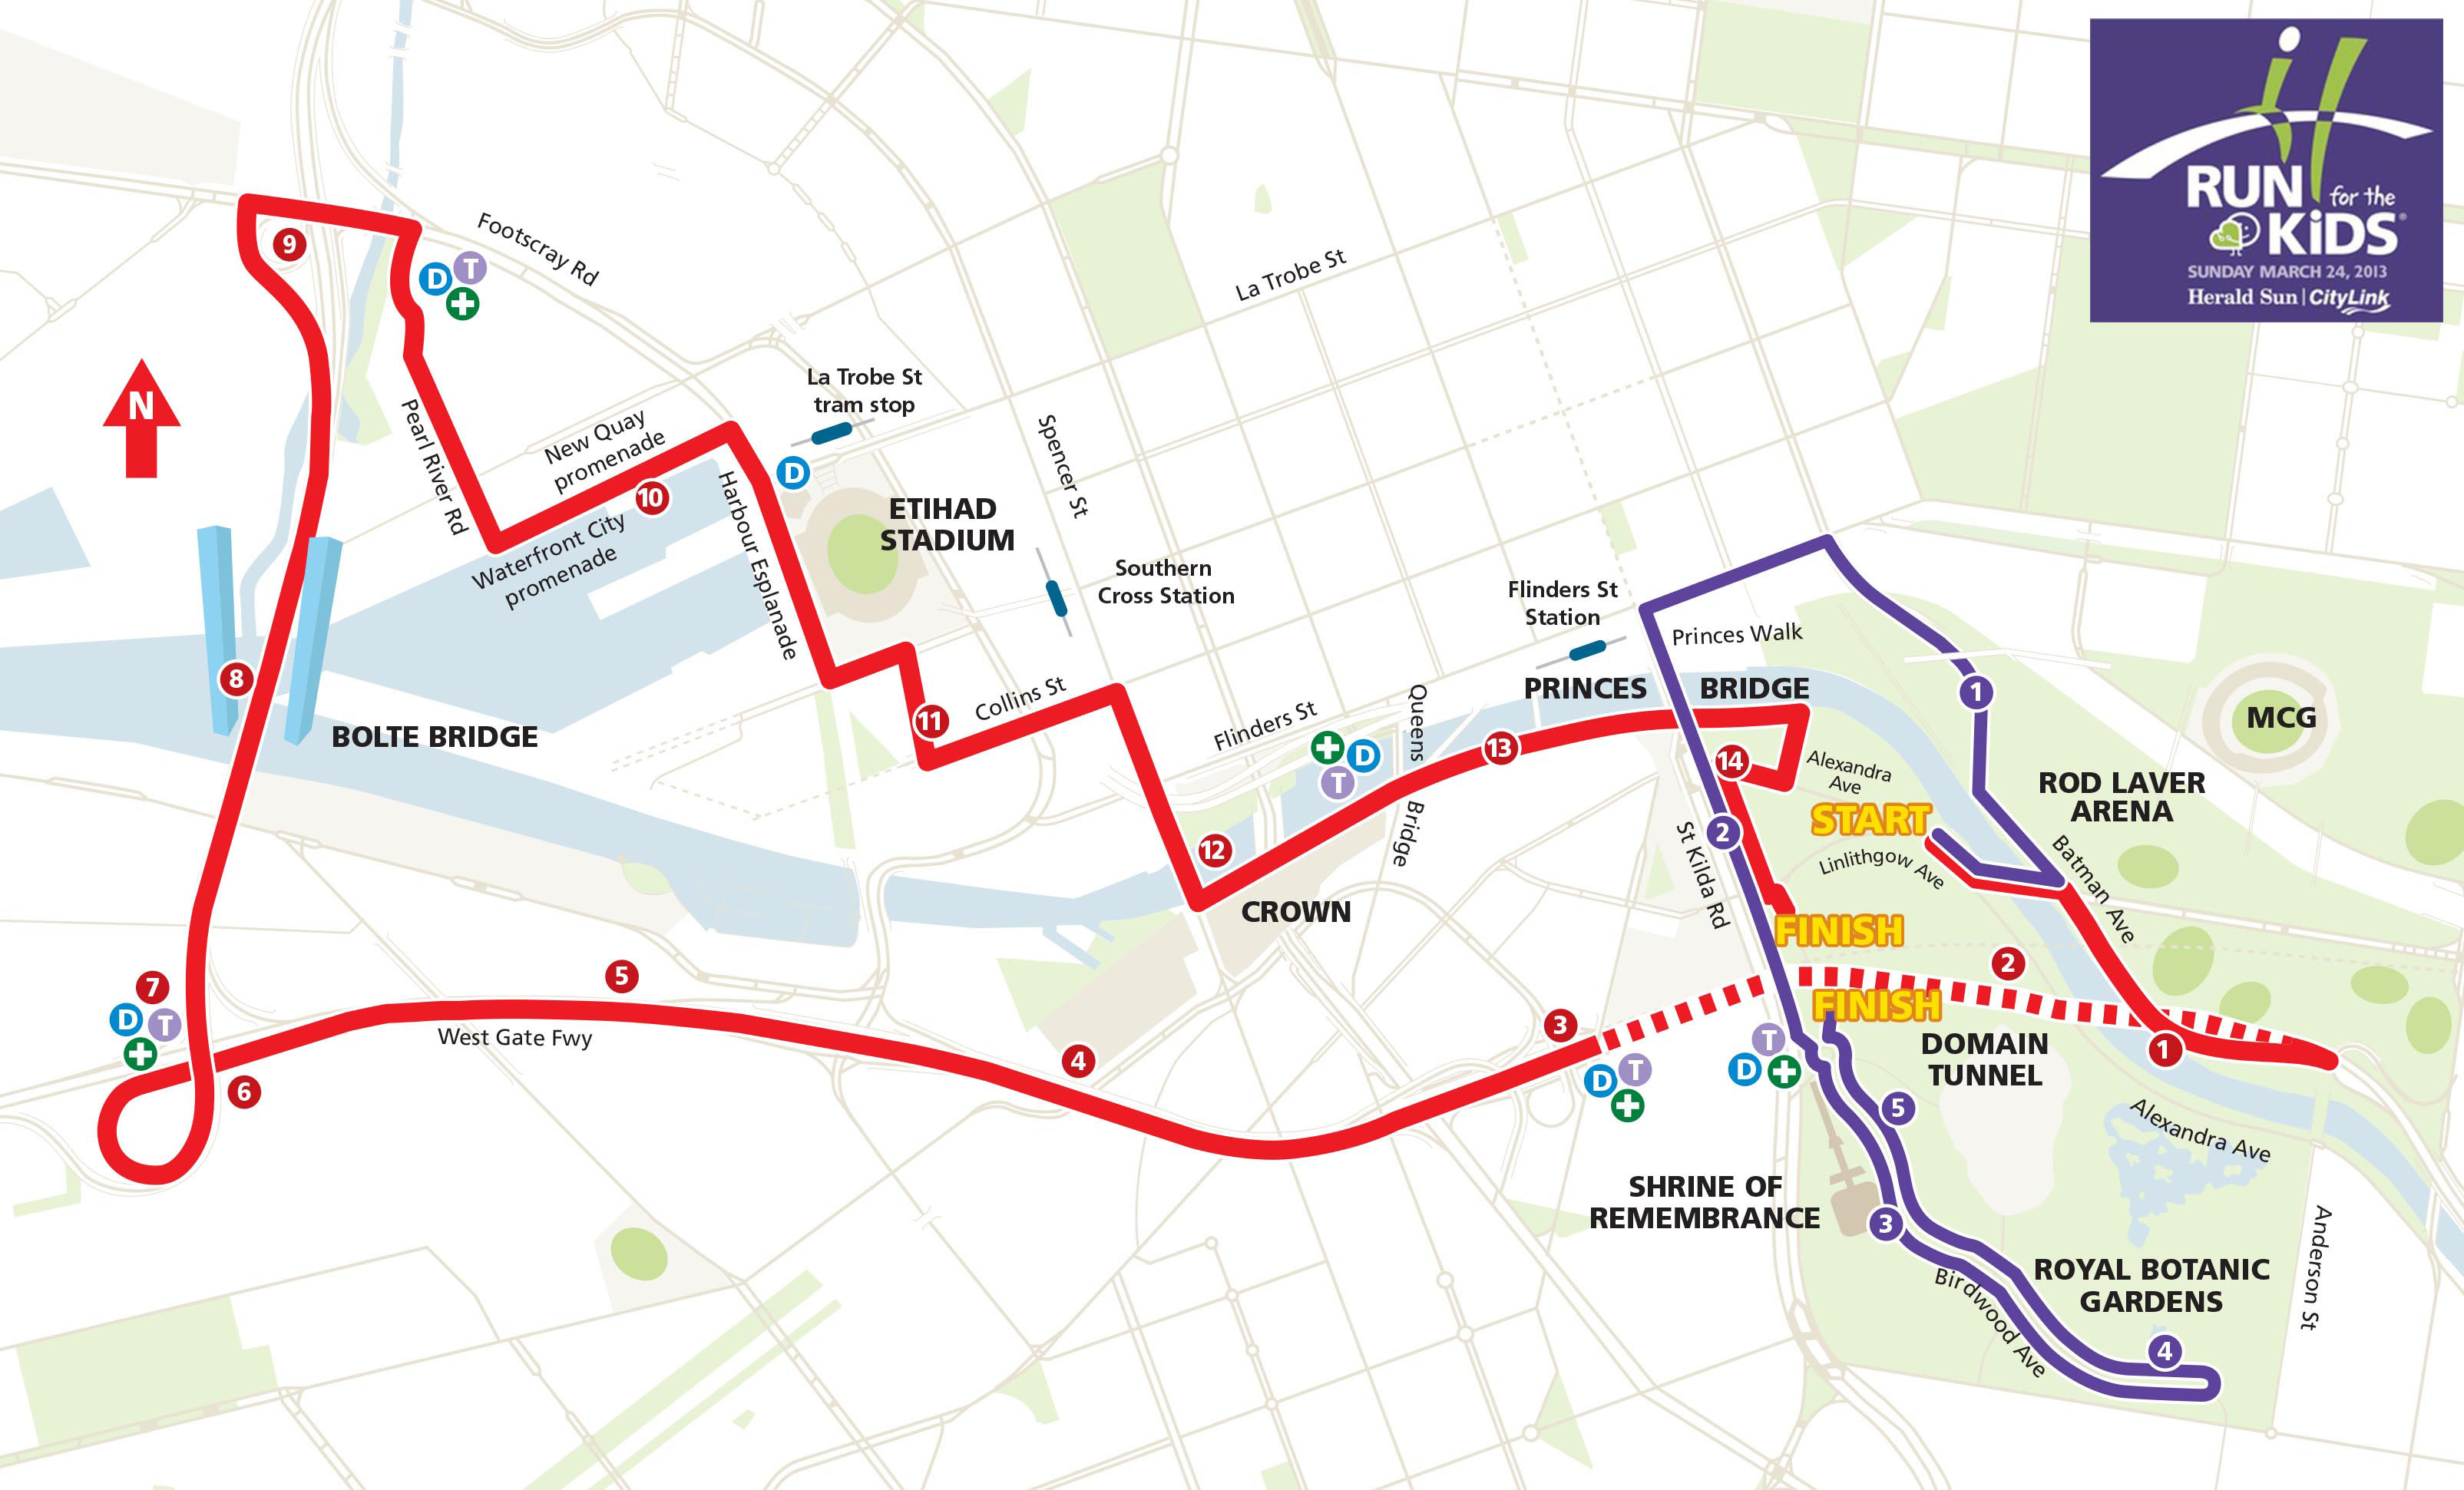 Run for the Kids Course Map